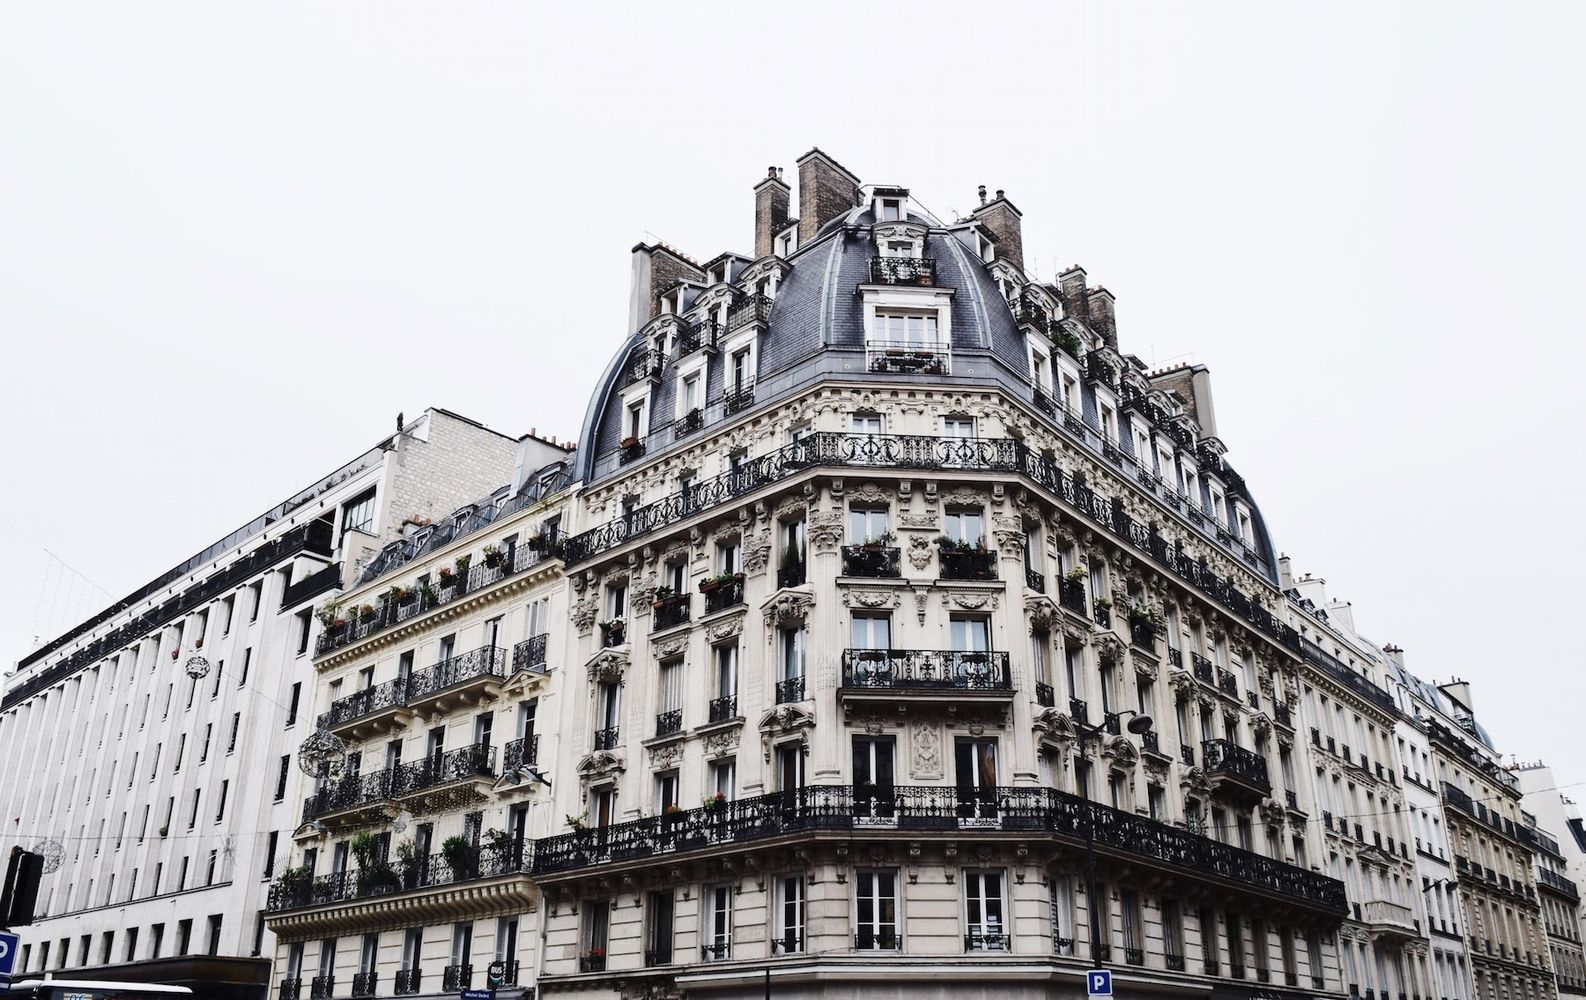 architecture black iron balconies in paris. Black Bedroom Furniture Sets. Home Design Ideas